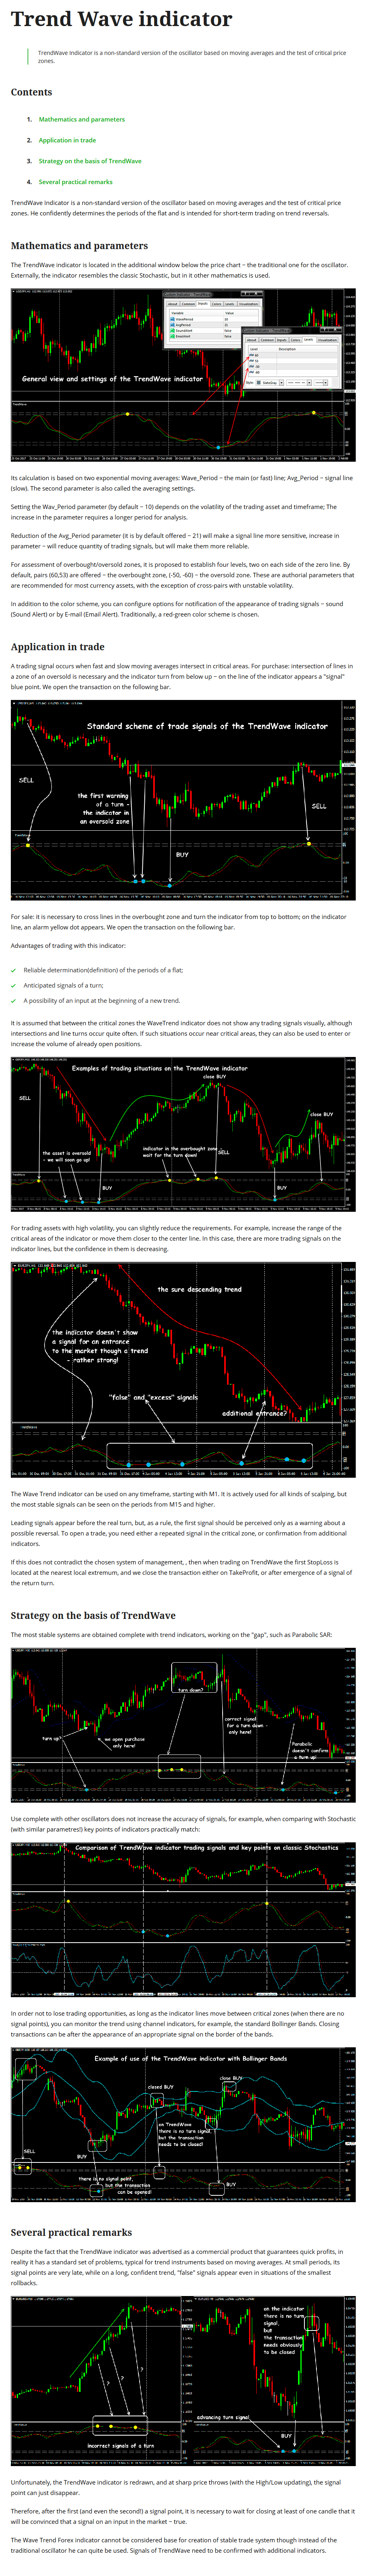 Forex-Trend-Wave-indicator-on-one-wave-with-the-market